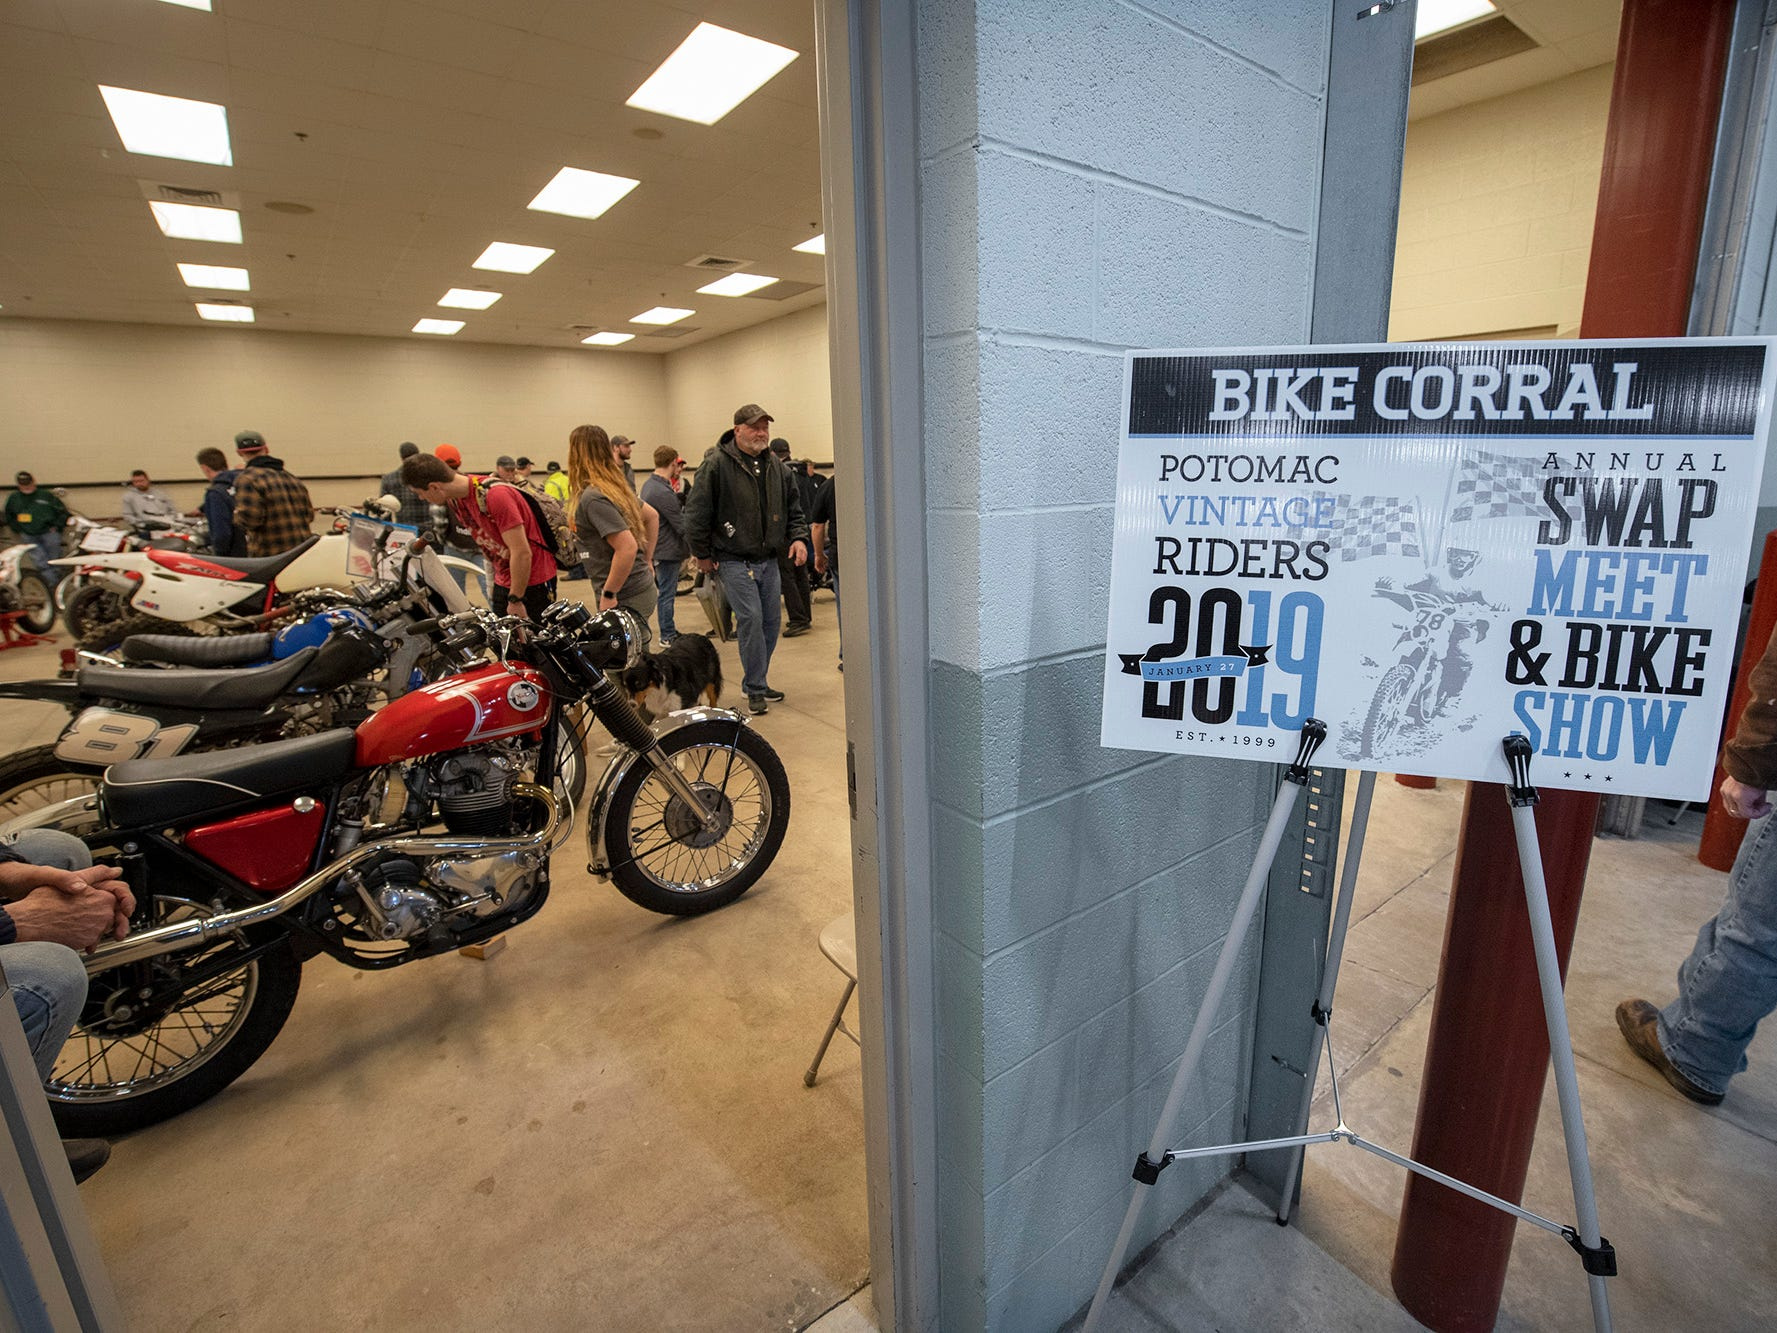 New for this year was the Bike Corral, a dedicated room where attendees could bring motorcycles they wanted to sell, during the The Potomac Vintage Riders' York Swap Meet Sunday January 27, 2019 at the York Expo Center.